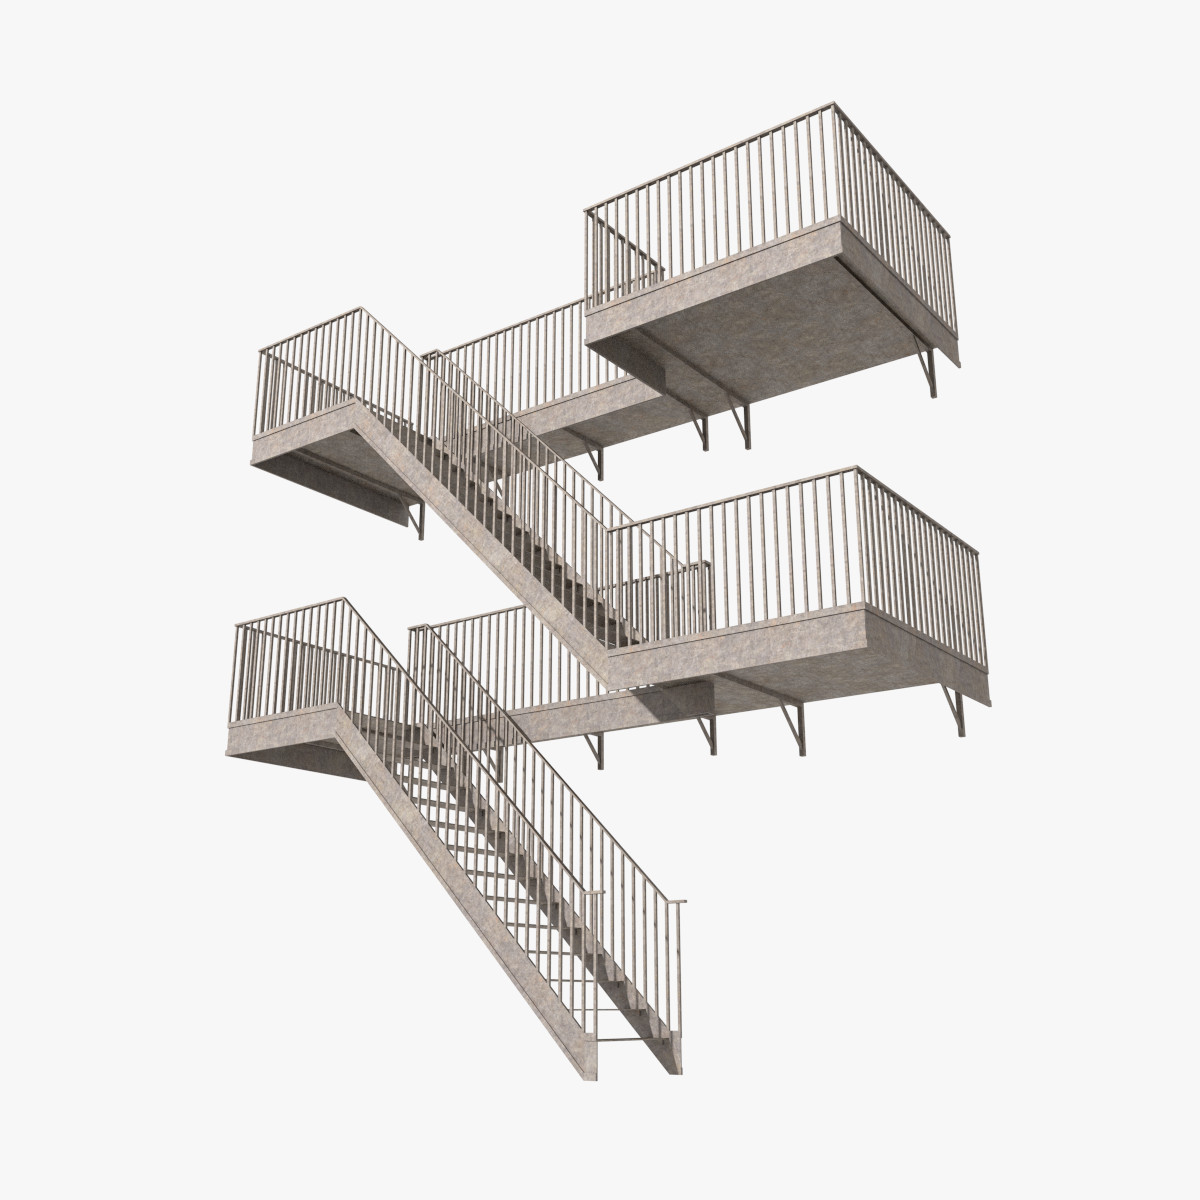 IronStairs02Tex_Preview01.png